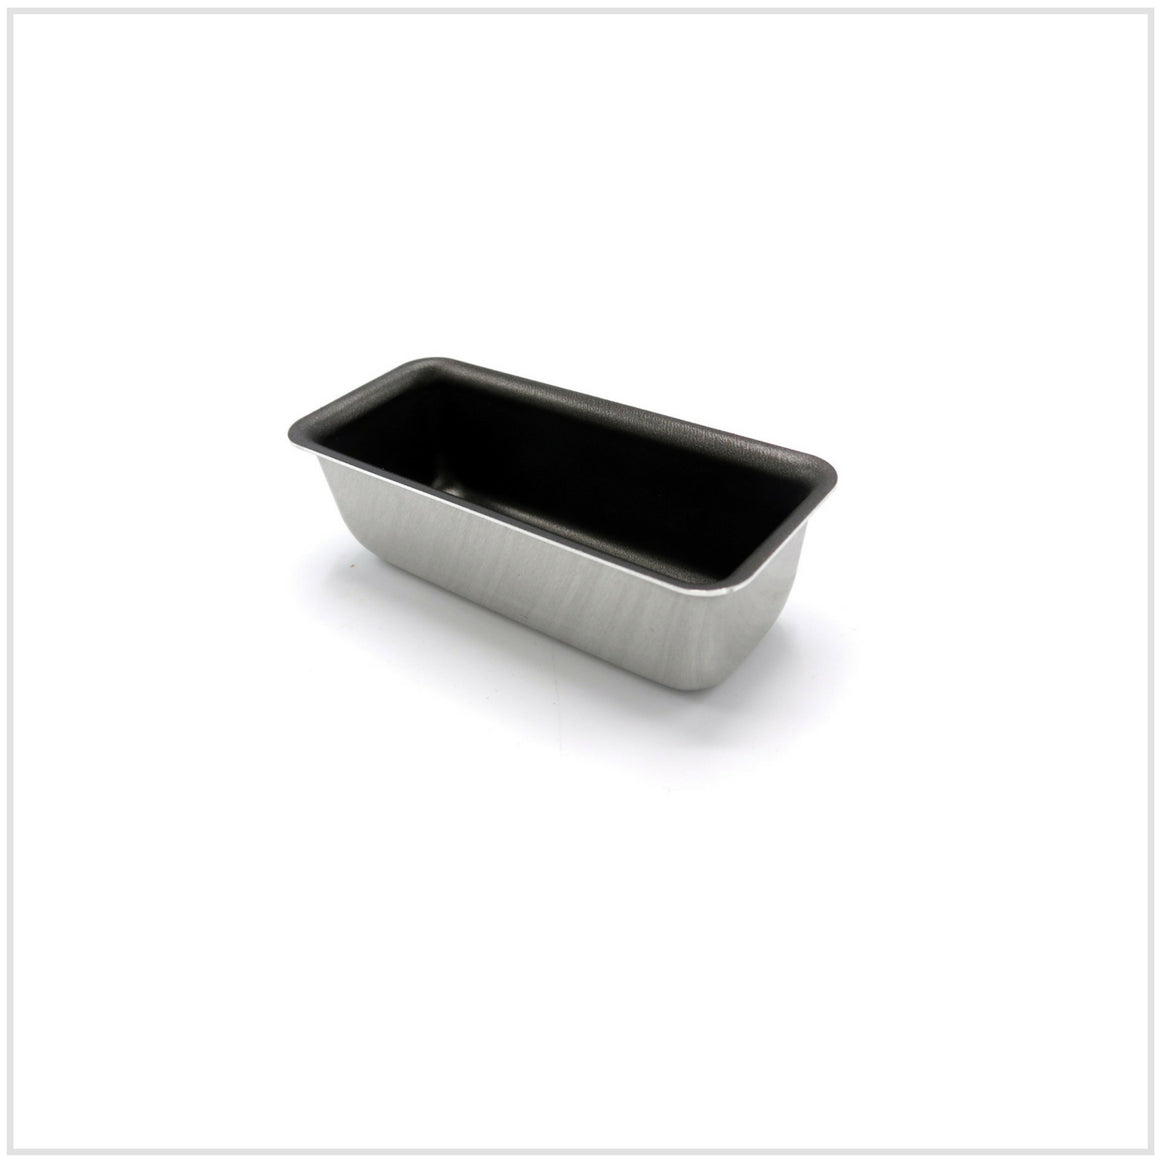 Mini Loaf Pan 10x3cm